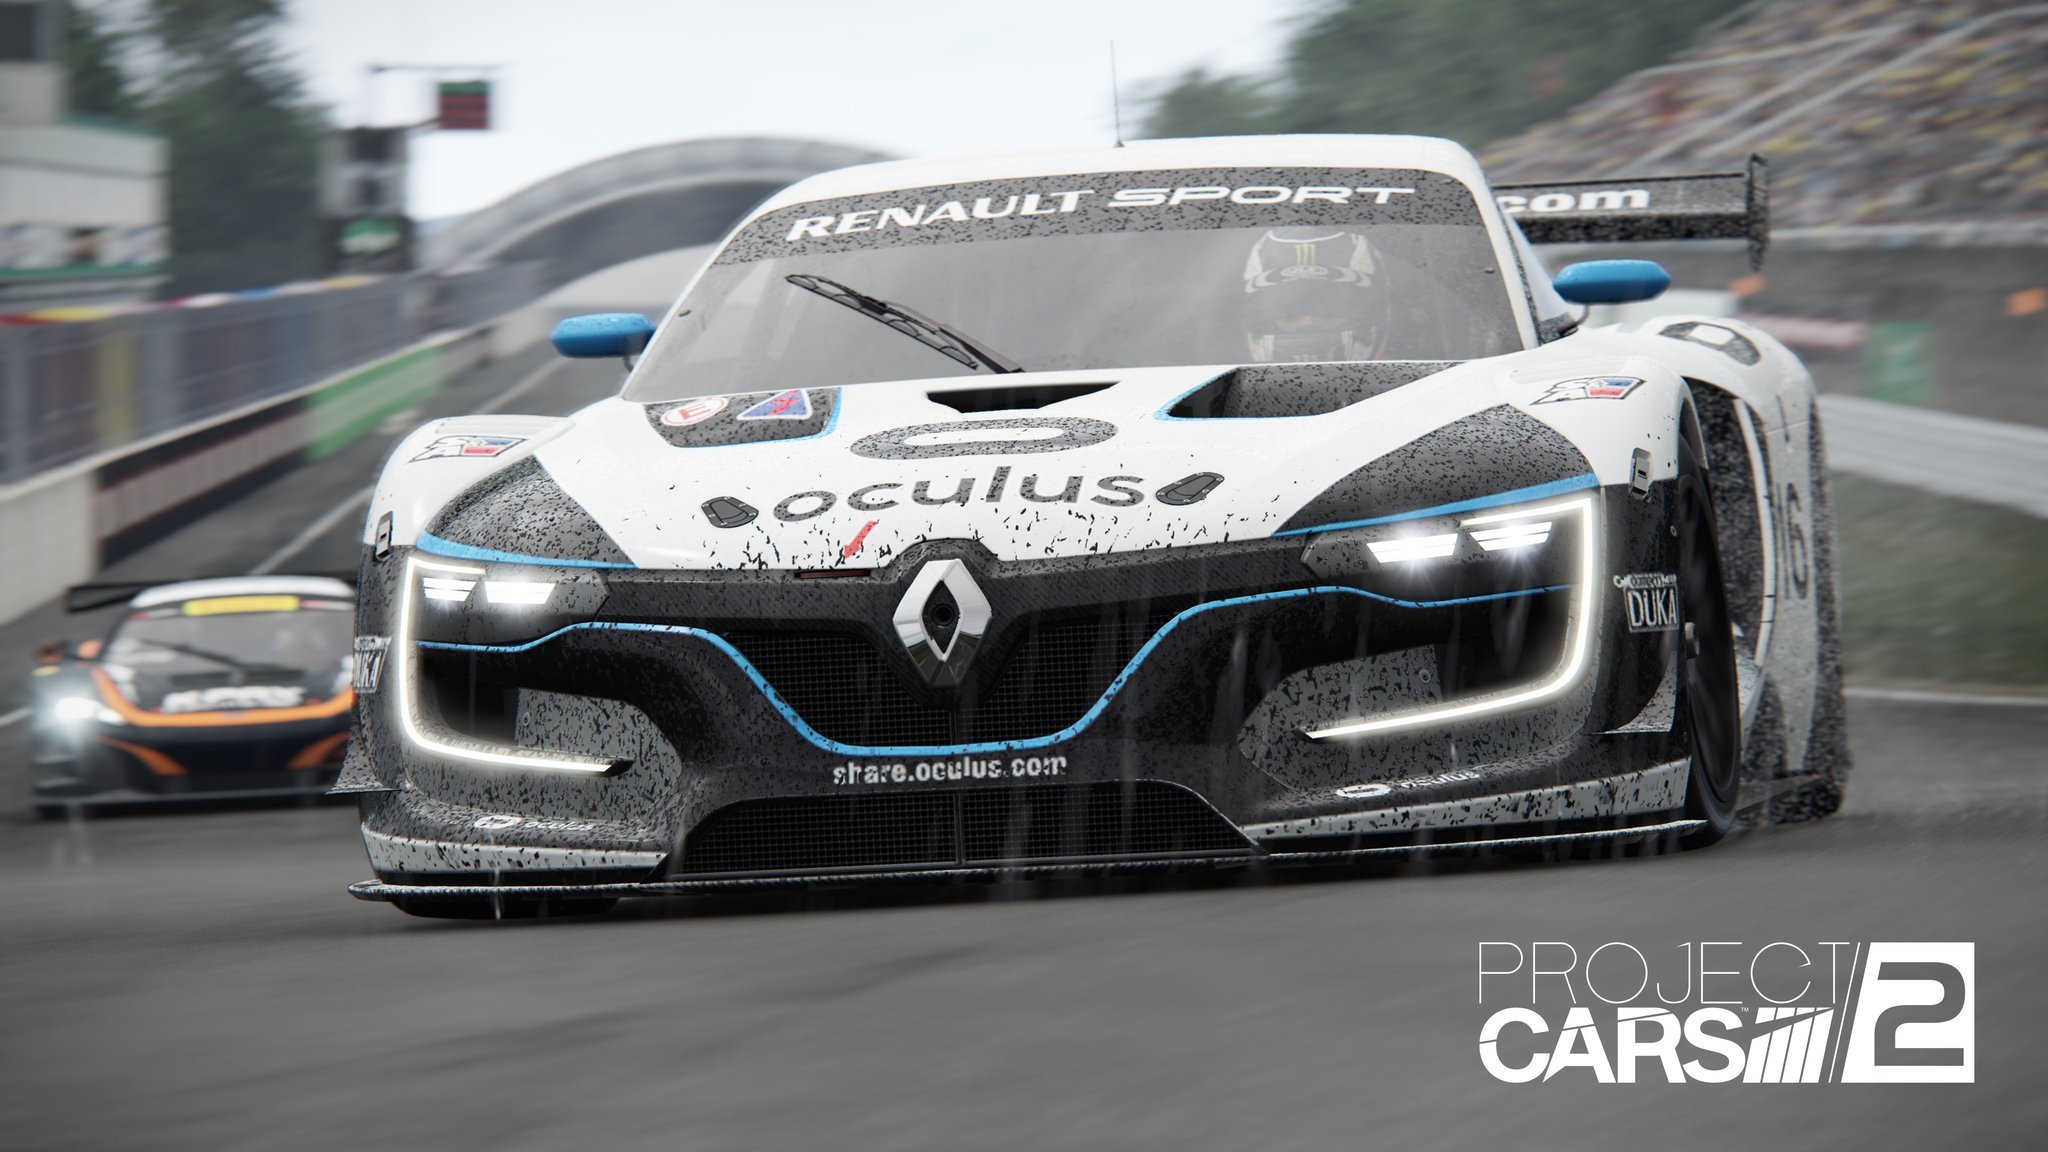 Project CARS 2 Renault GT